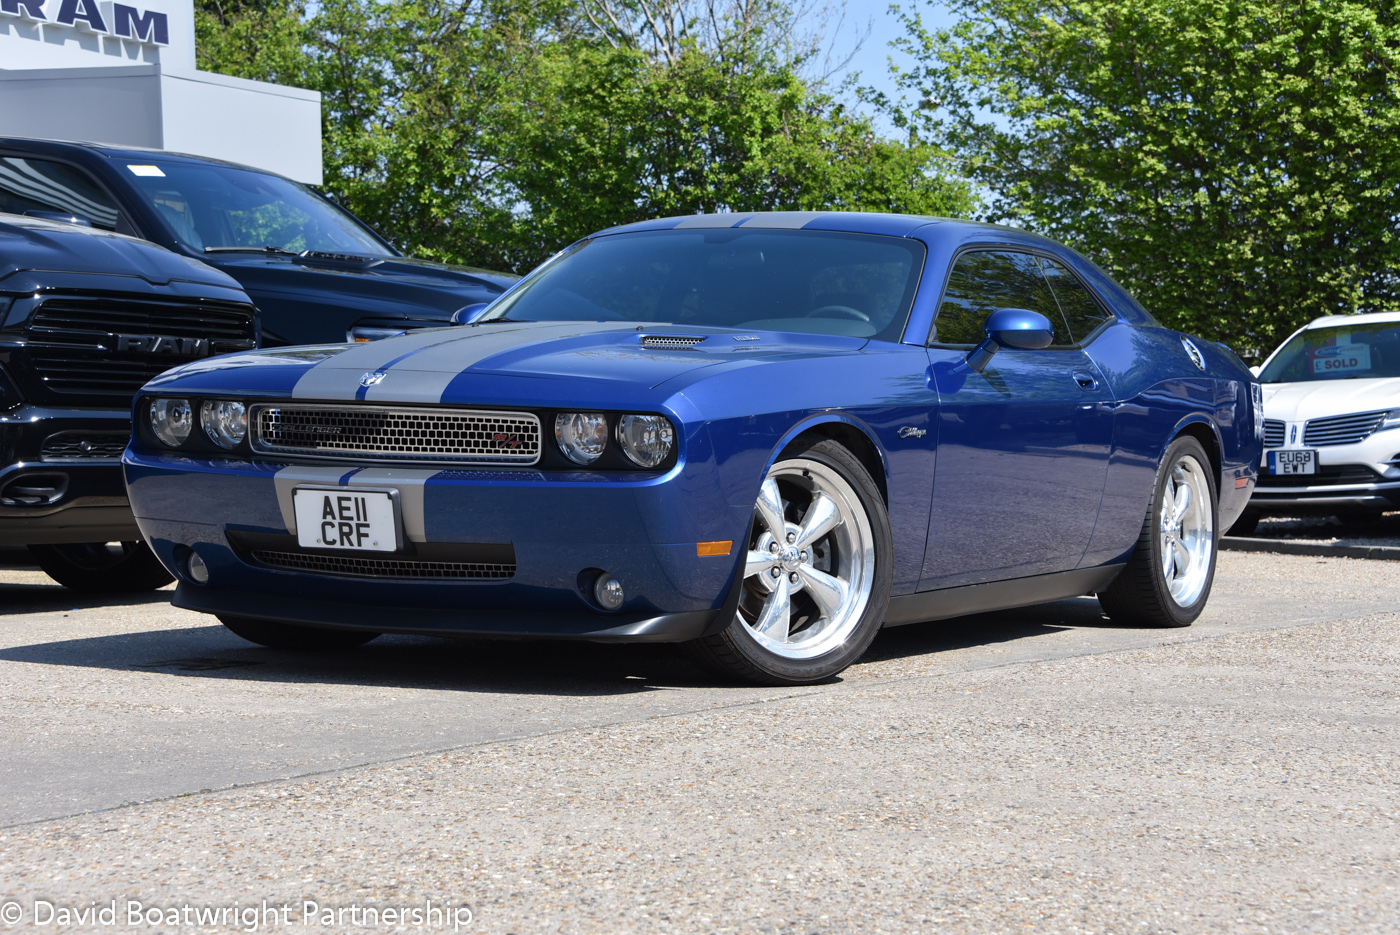 2010 Challenger RT BLUE PERFORMANCE UPGRADES2010 Challenger RT BLUE PERFORMANCE UPGRADES